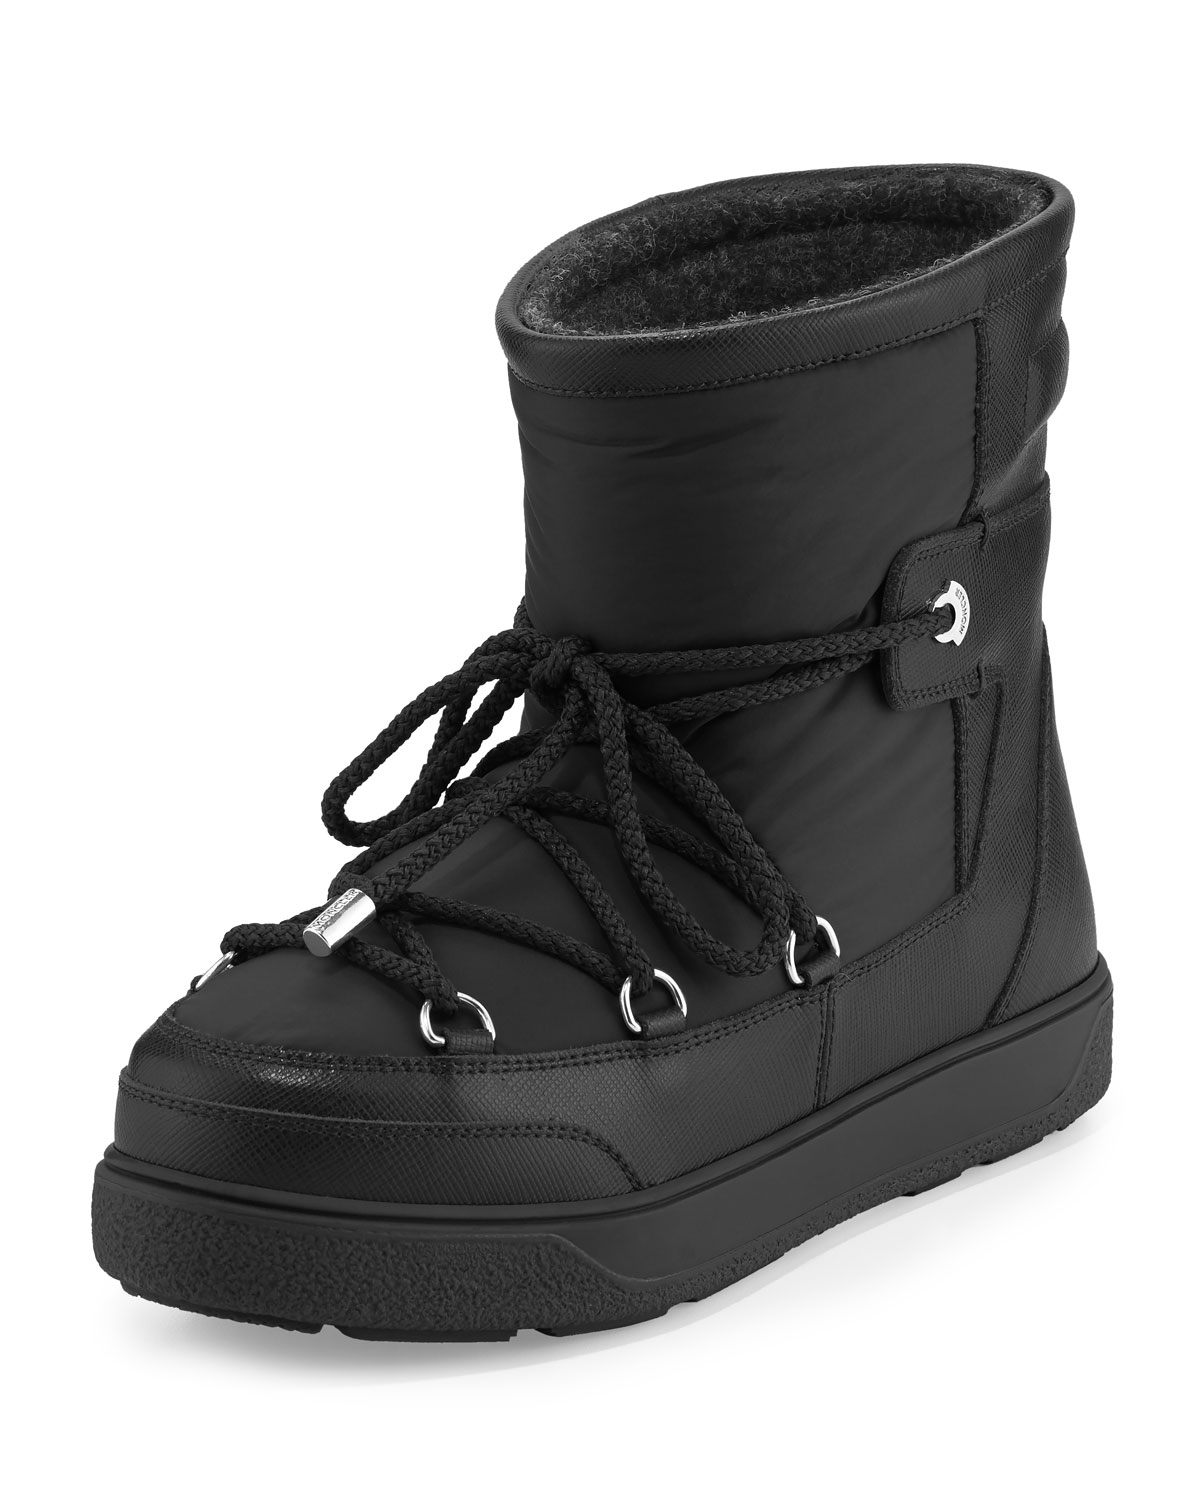 Leather Ankle Black Lace Moncler Up Marcus Neiman Boot Fanny wqIRnxvgt